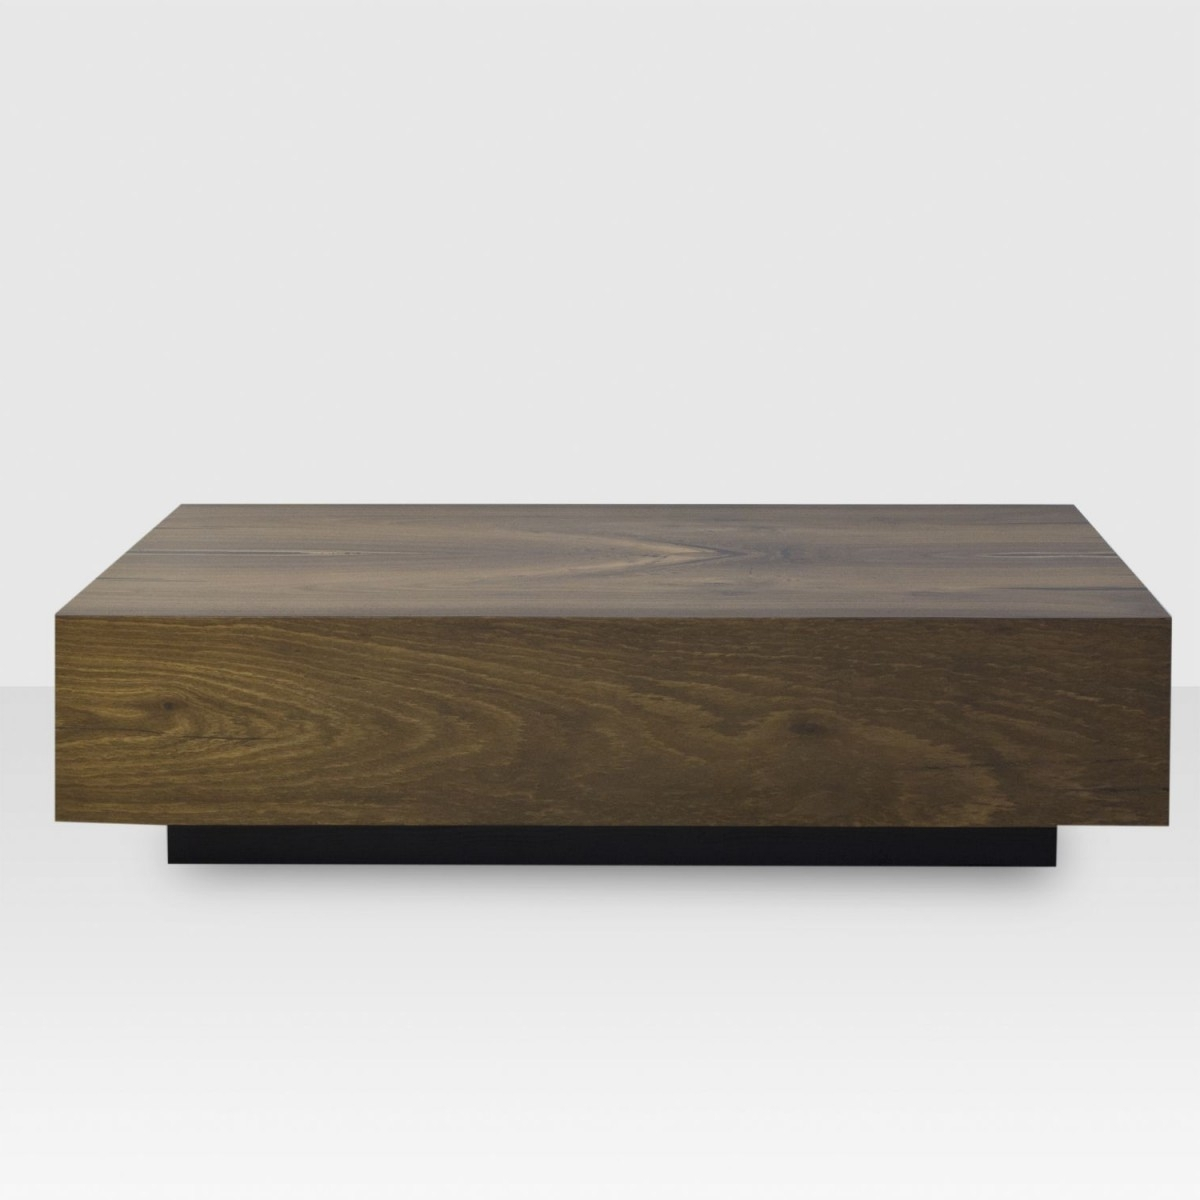 Element Coffee Table – Elte With Regard To Famous Element Coffee Tables (View 8 of 20)